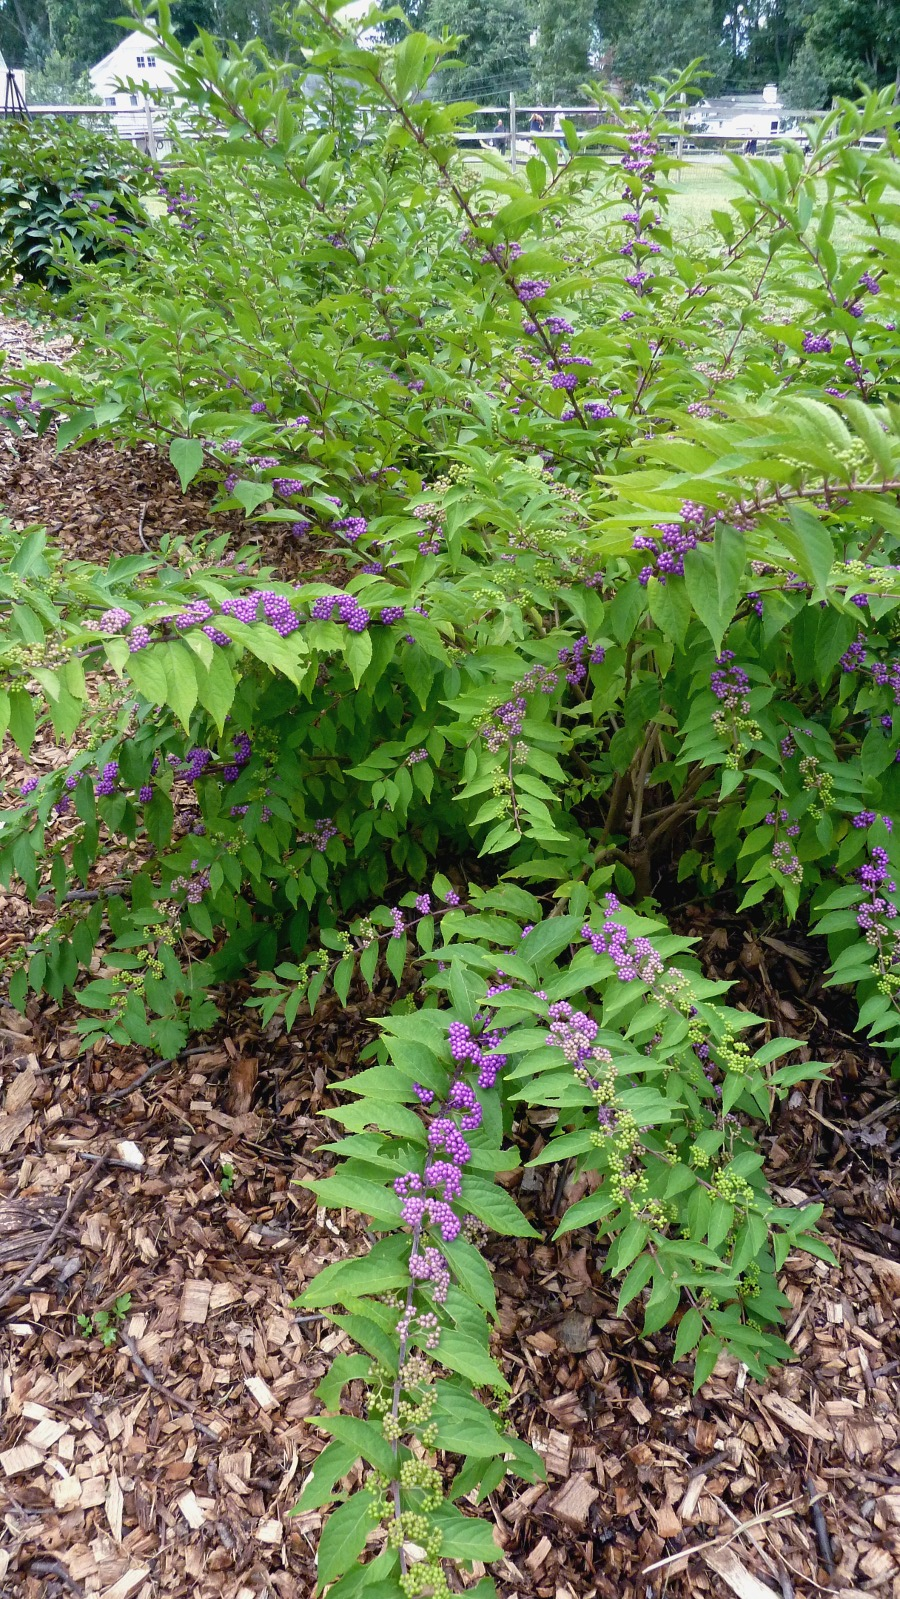 What is the bush with bright purple berries blooming at the Community Center?